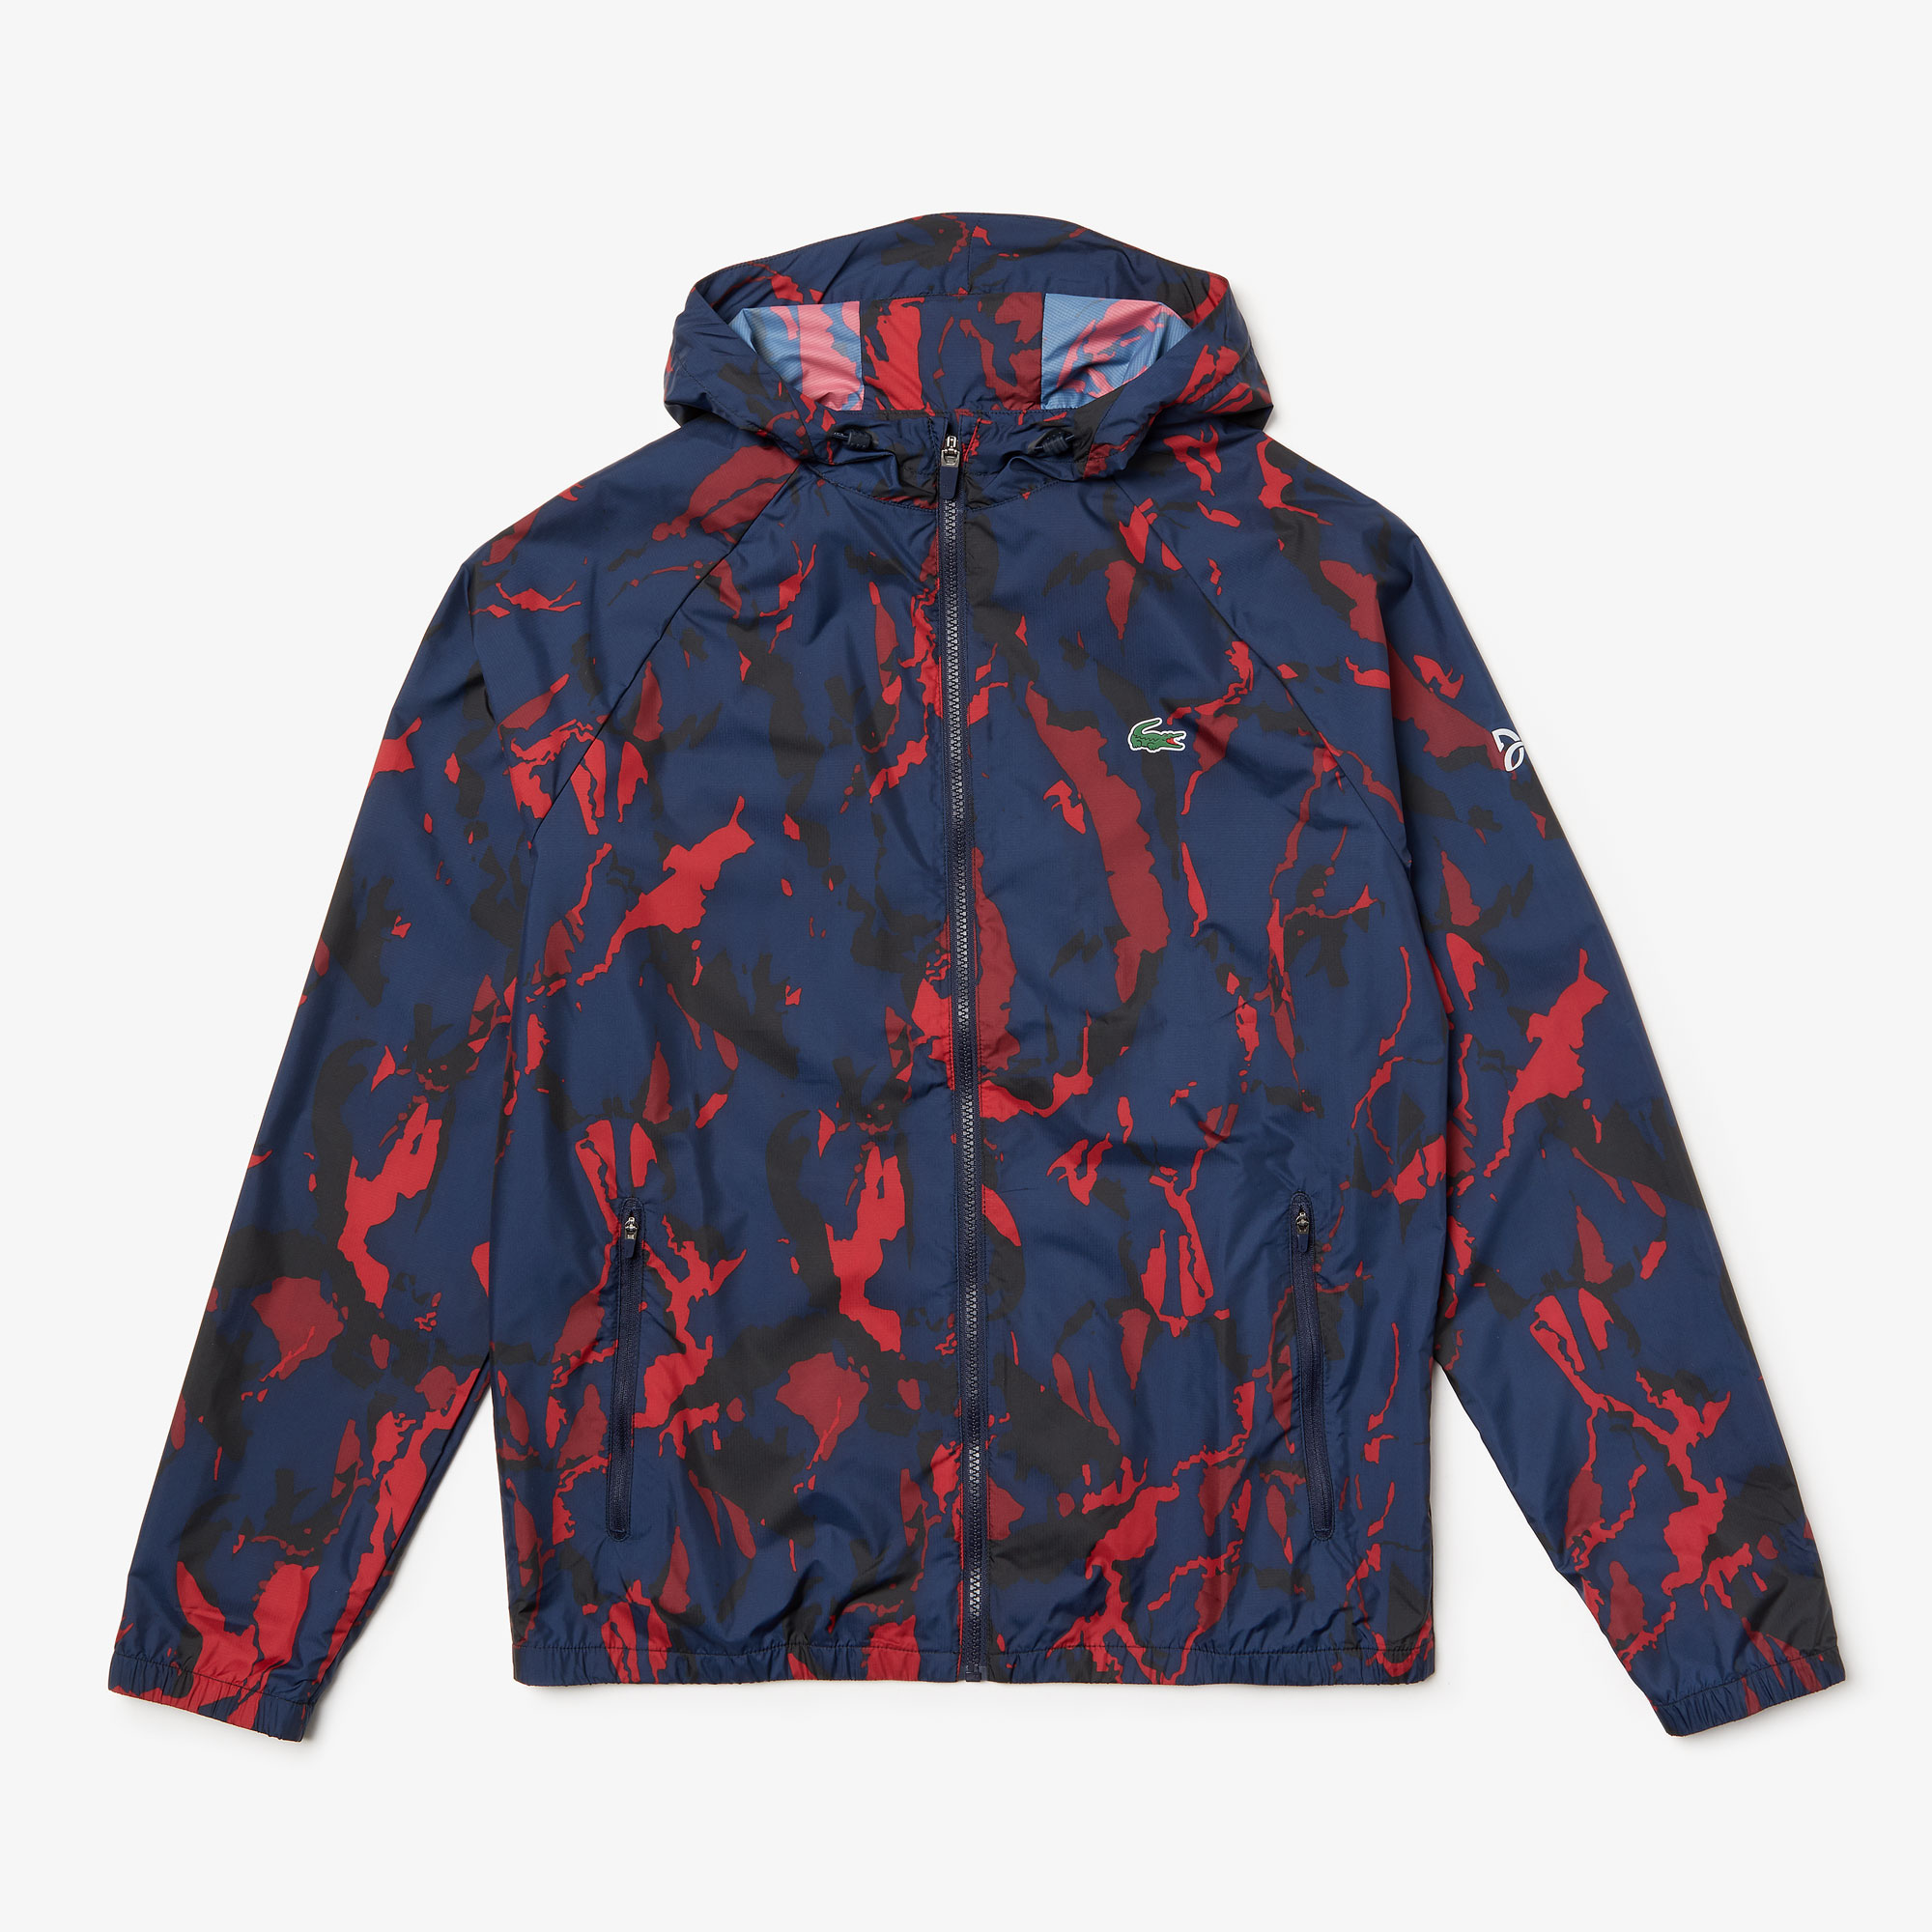 Men's SPORT Novak Djokovic Camo Print Jacket